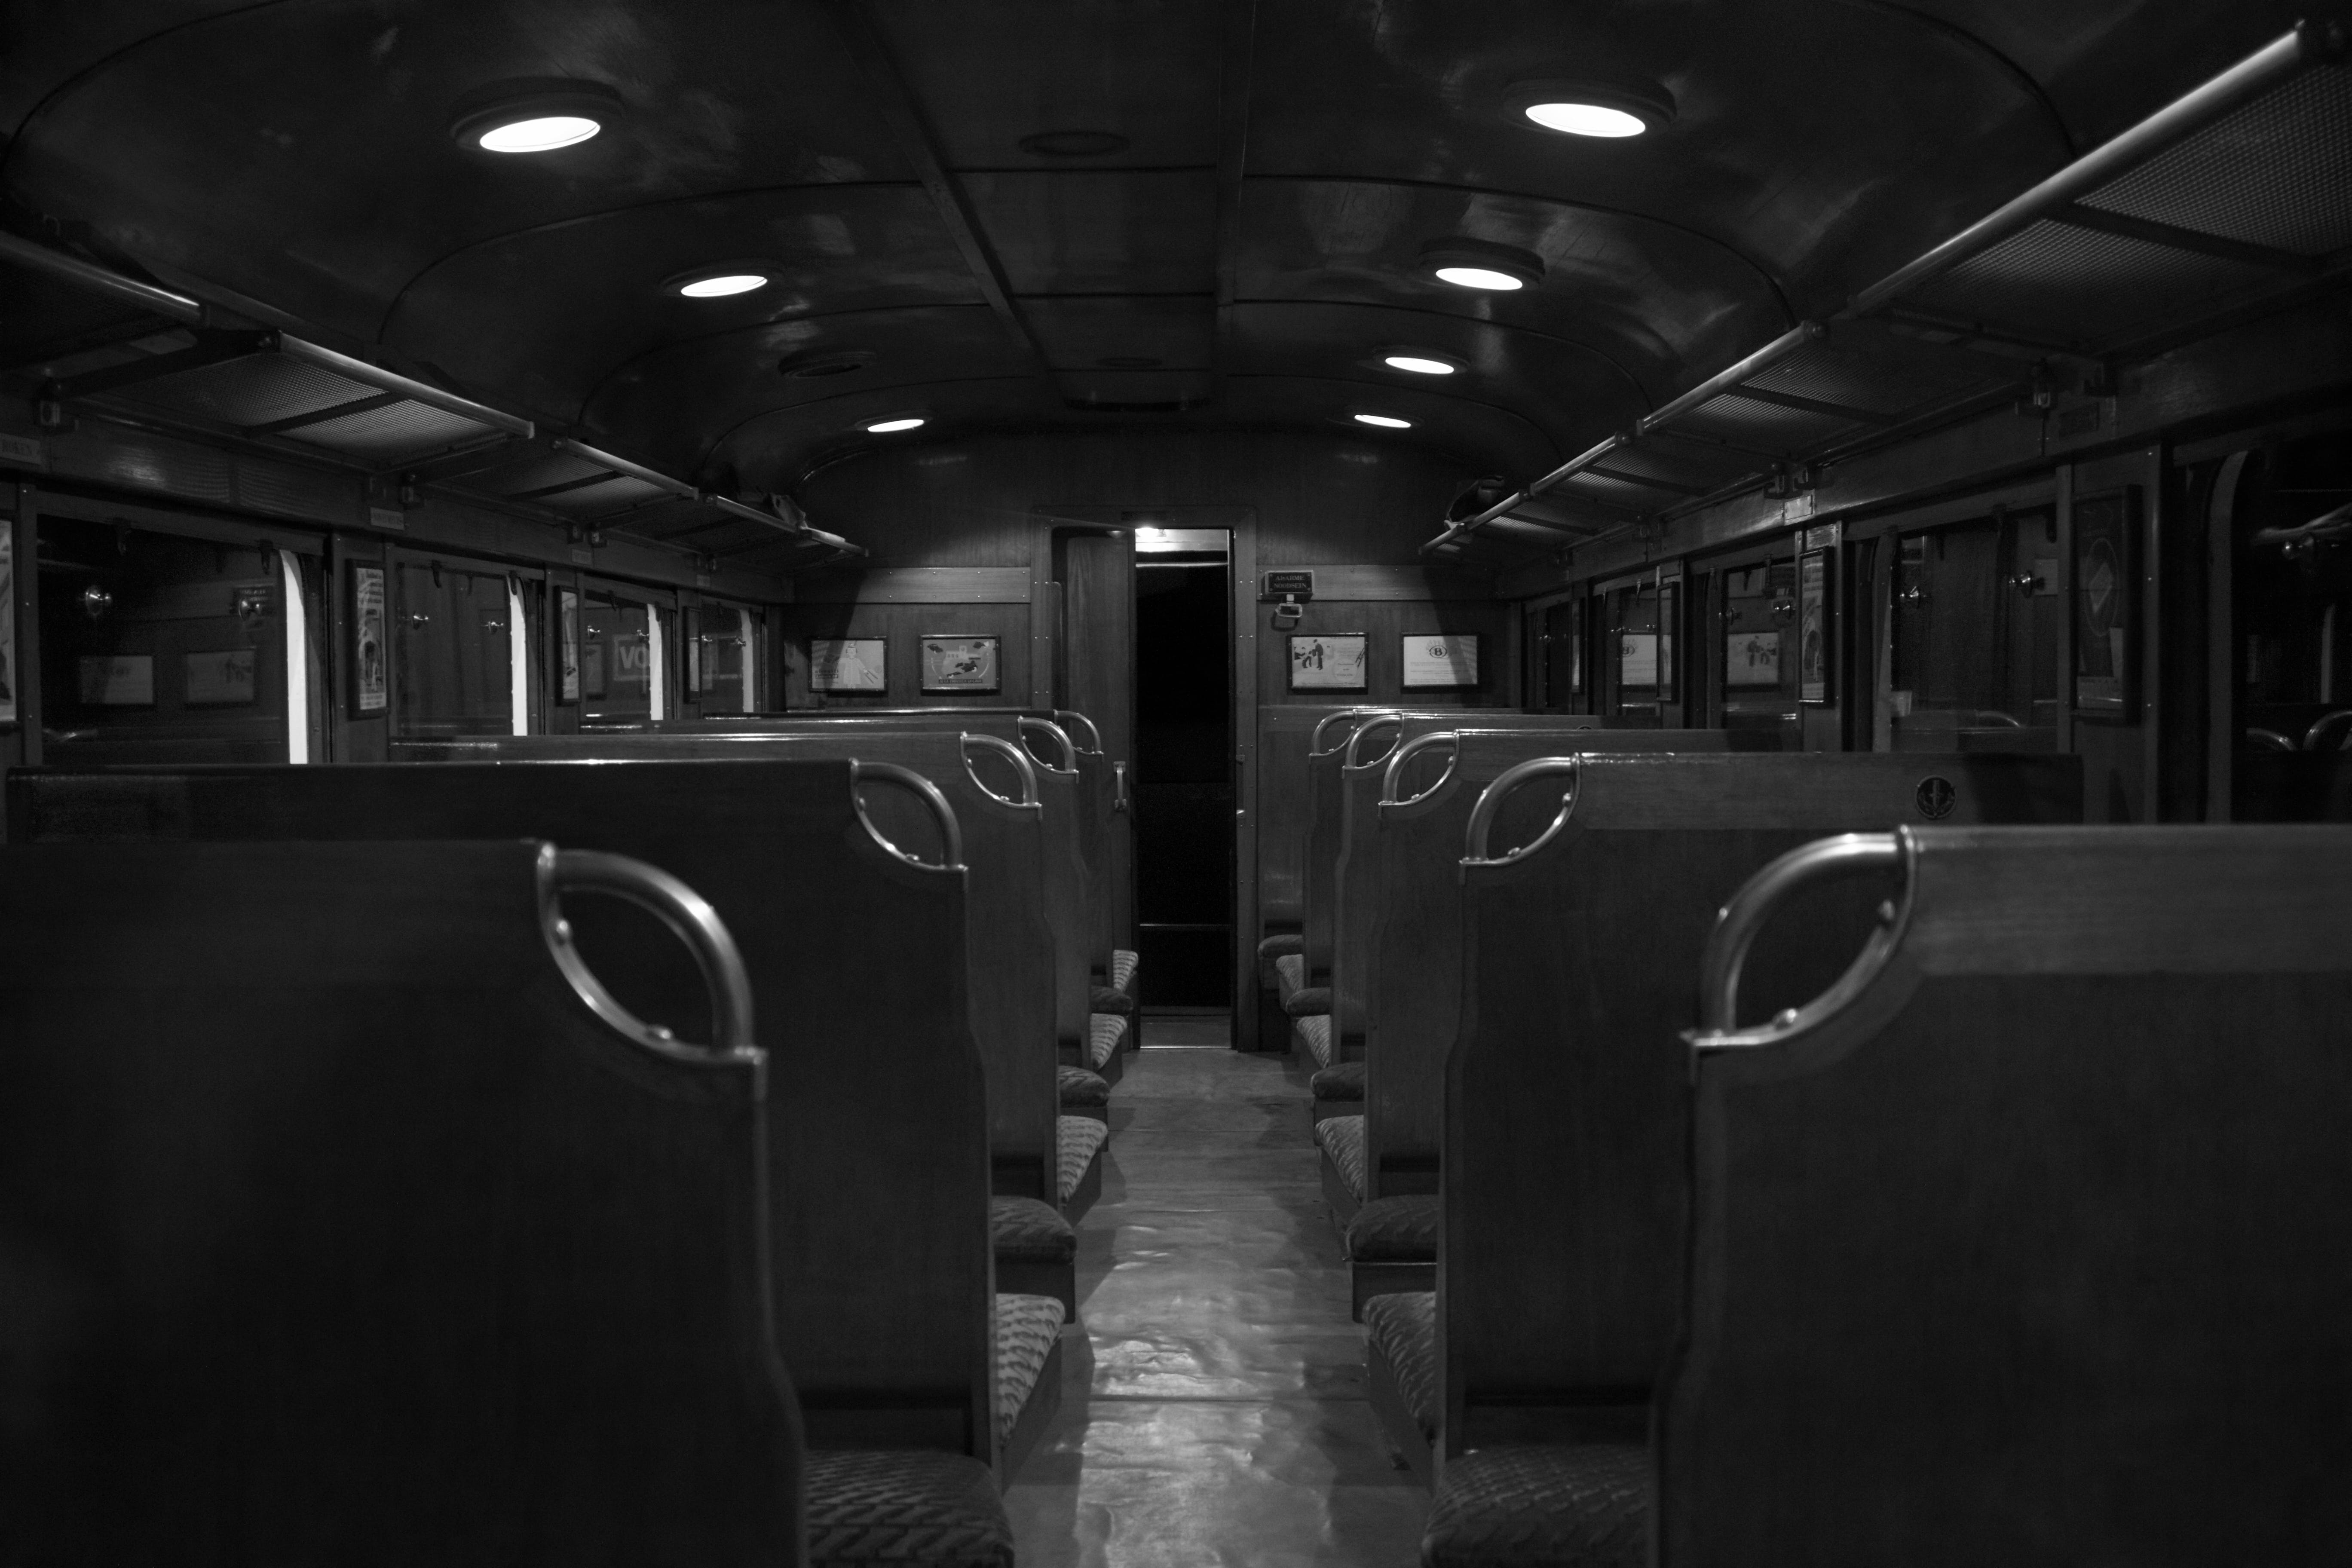 Grayscale Photography of Train Car Interior